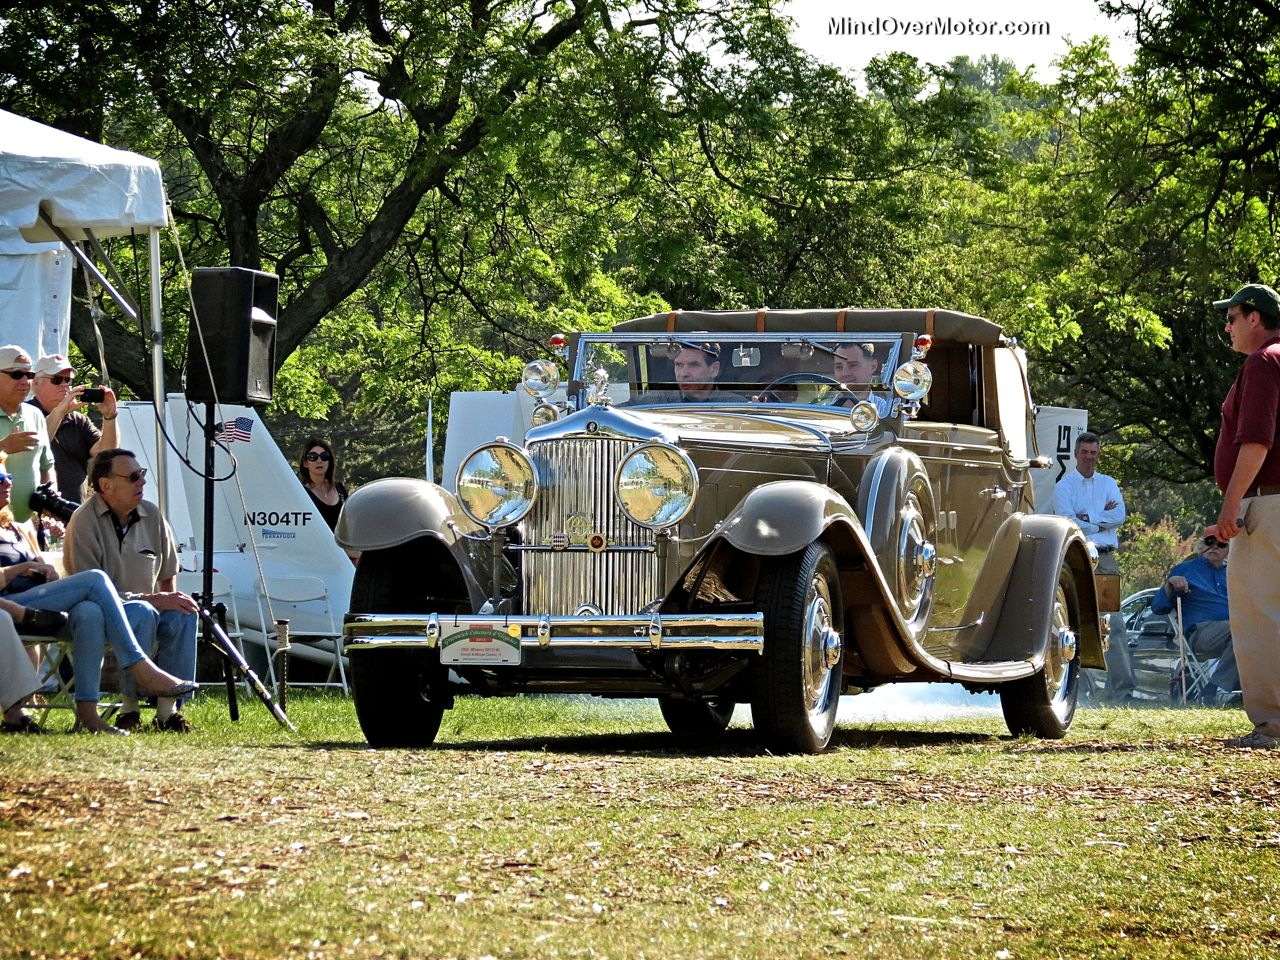 1938 Minerva 80130 AL, the 2014 Greenwich Concours d'Elegance Best in Show Winner